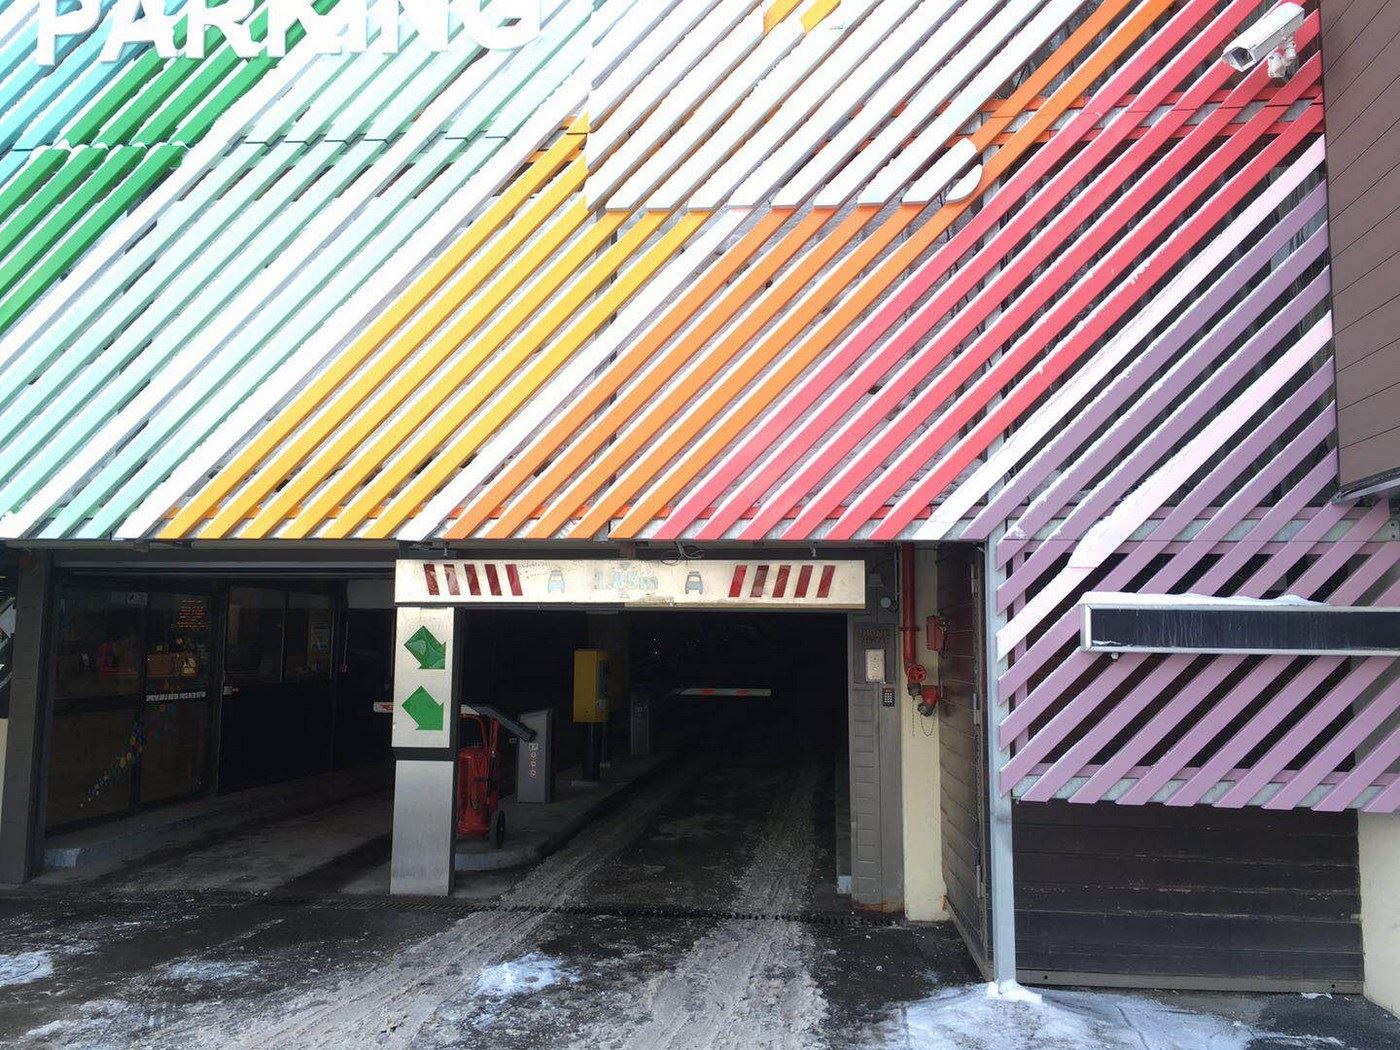 PARKING PLACE - PUBLIC COVERED CAR PARK